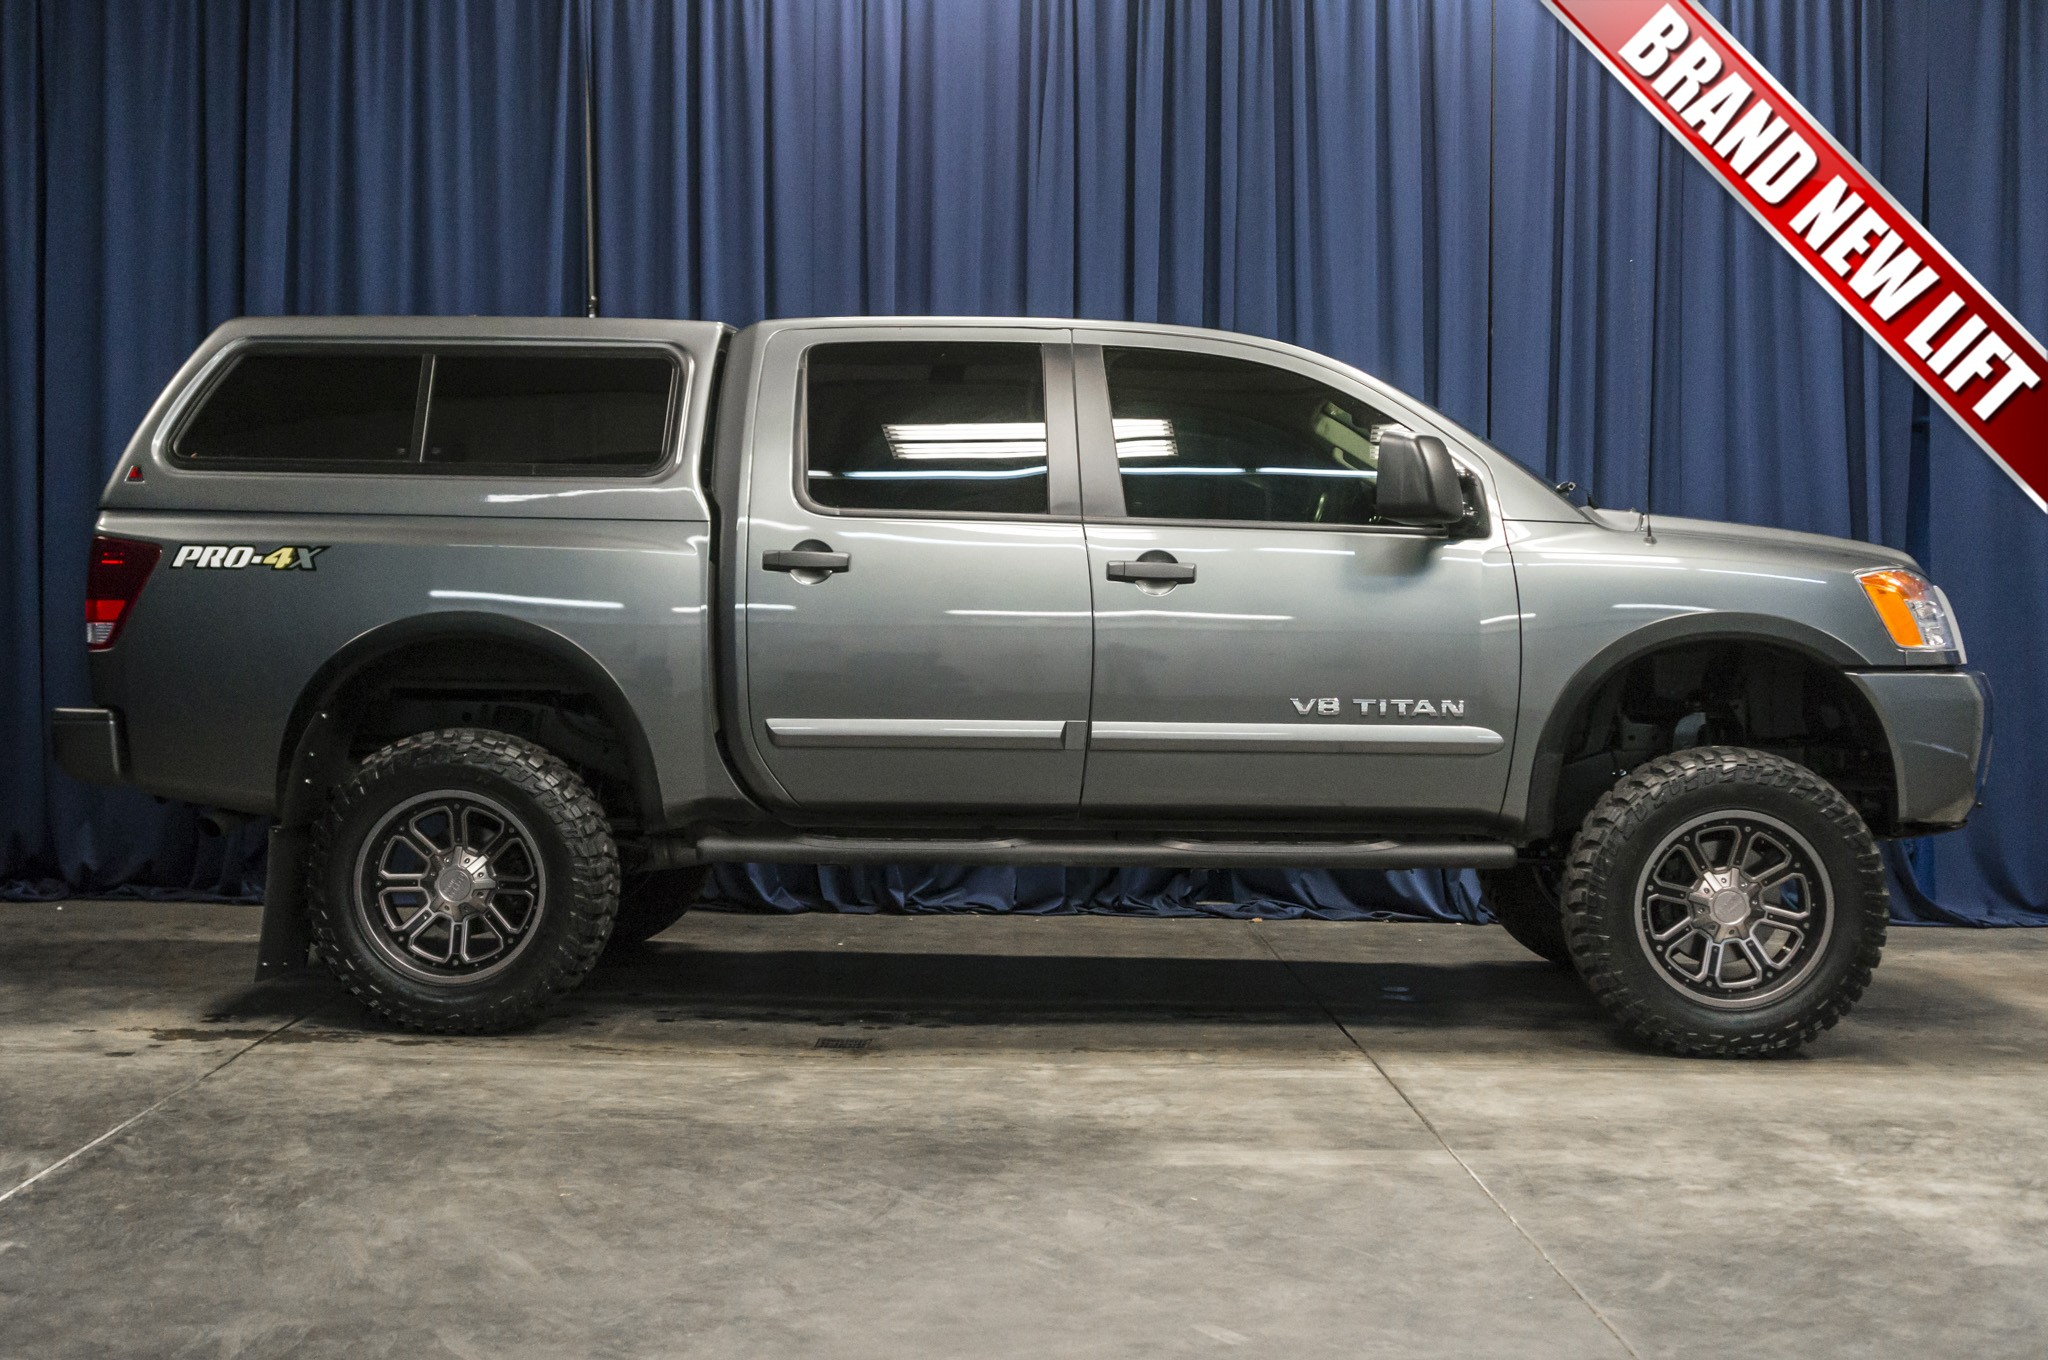 Used Lifted 2014 Nissan Titan PRO 4X 4x4 Truck For Sale